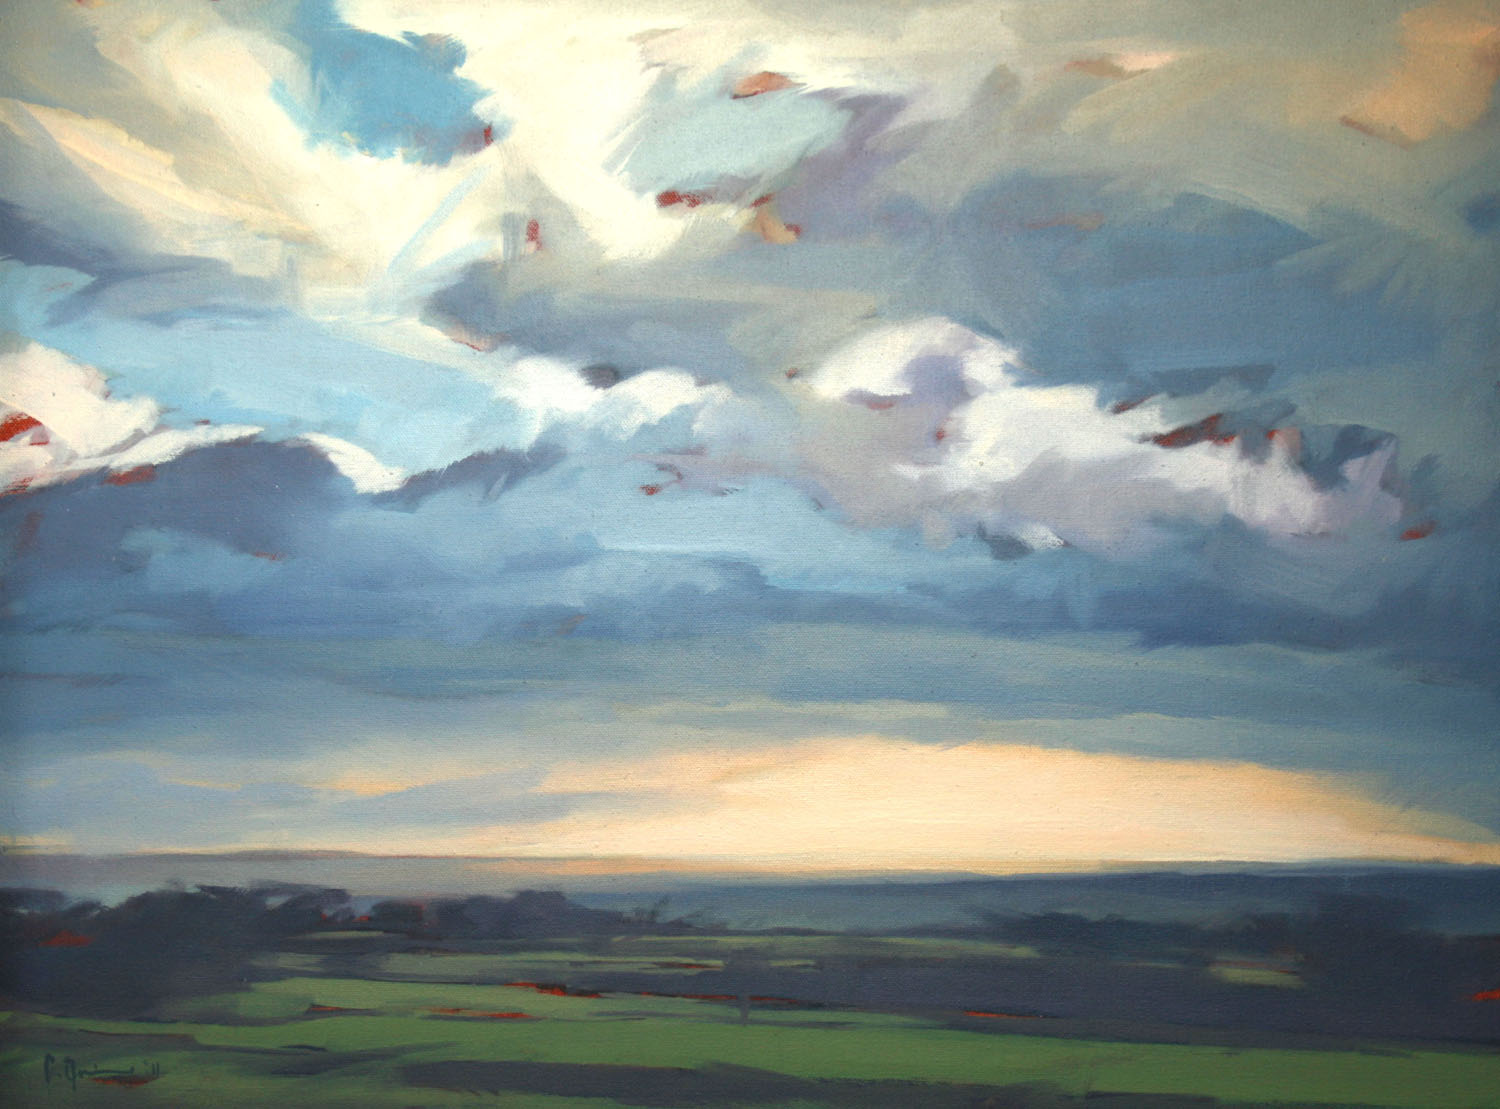 Tracey Quinn_2011_Belshaws_oil on canvas_45 x 60cm.jpg